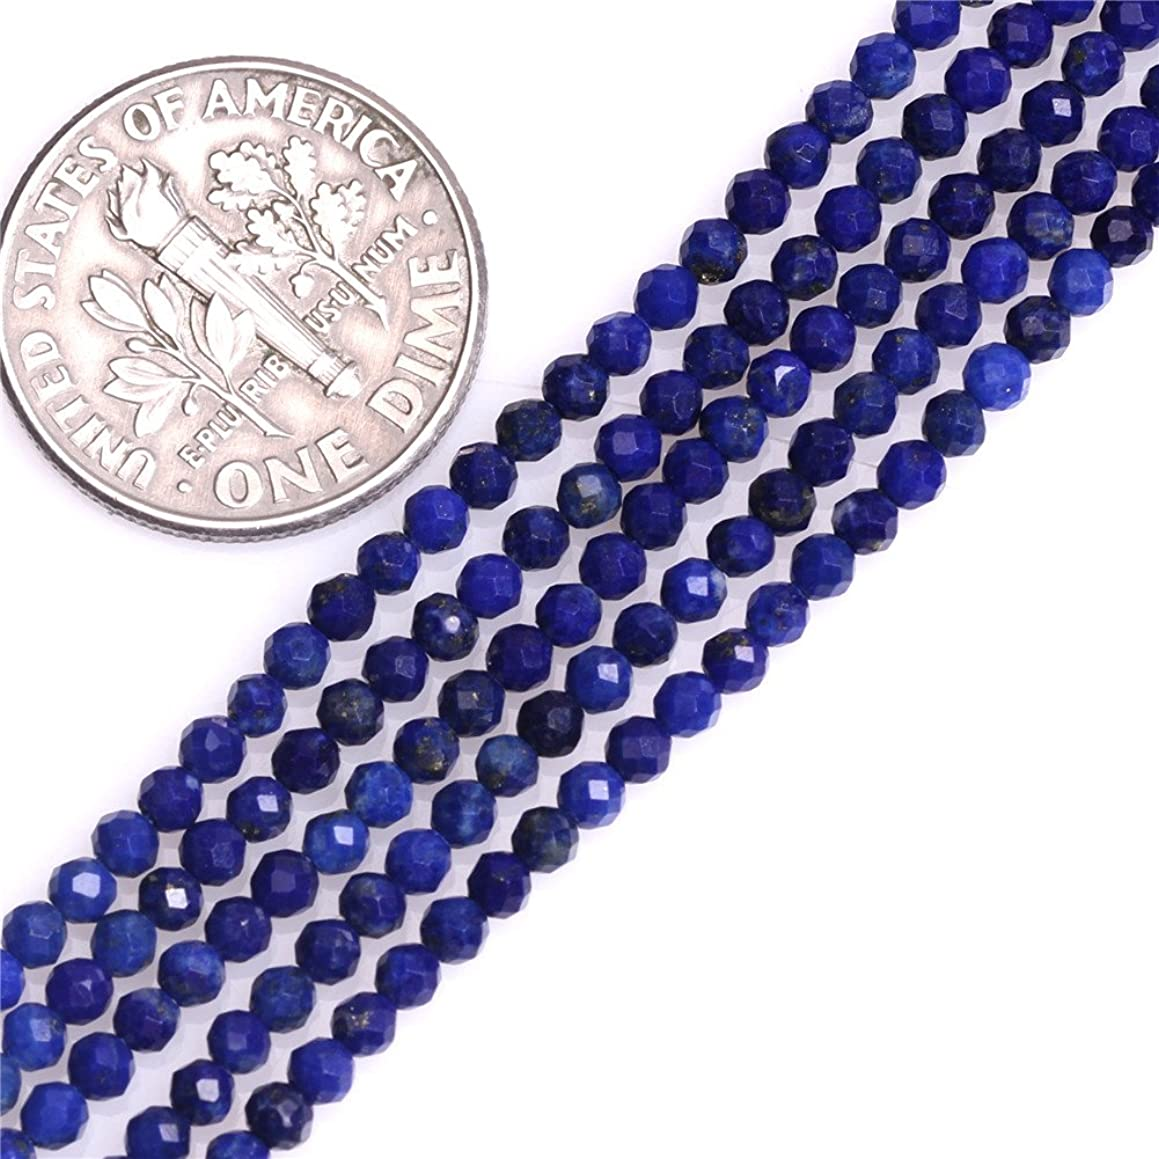 Blue Lapis Lazuli Beads for Jewelry Making Natural Gemstone Semi Precious 2mm Round Faceted Spacer 15